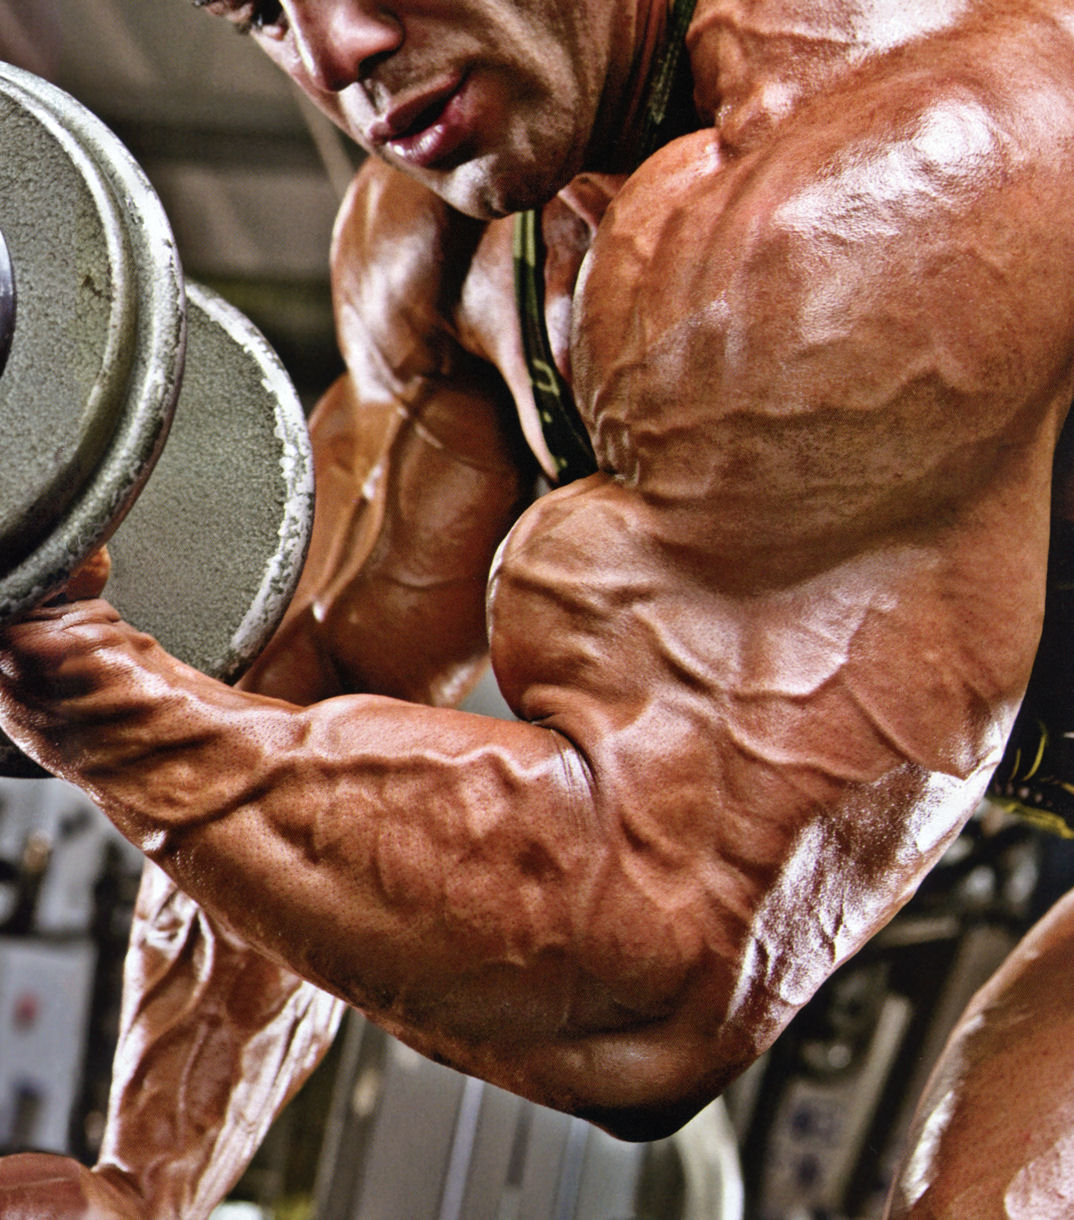 Knights of Bodybuilding: MOE EL MOUSSAWI